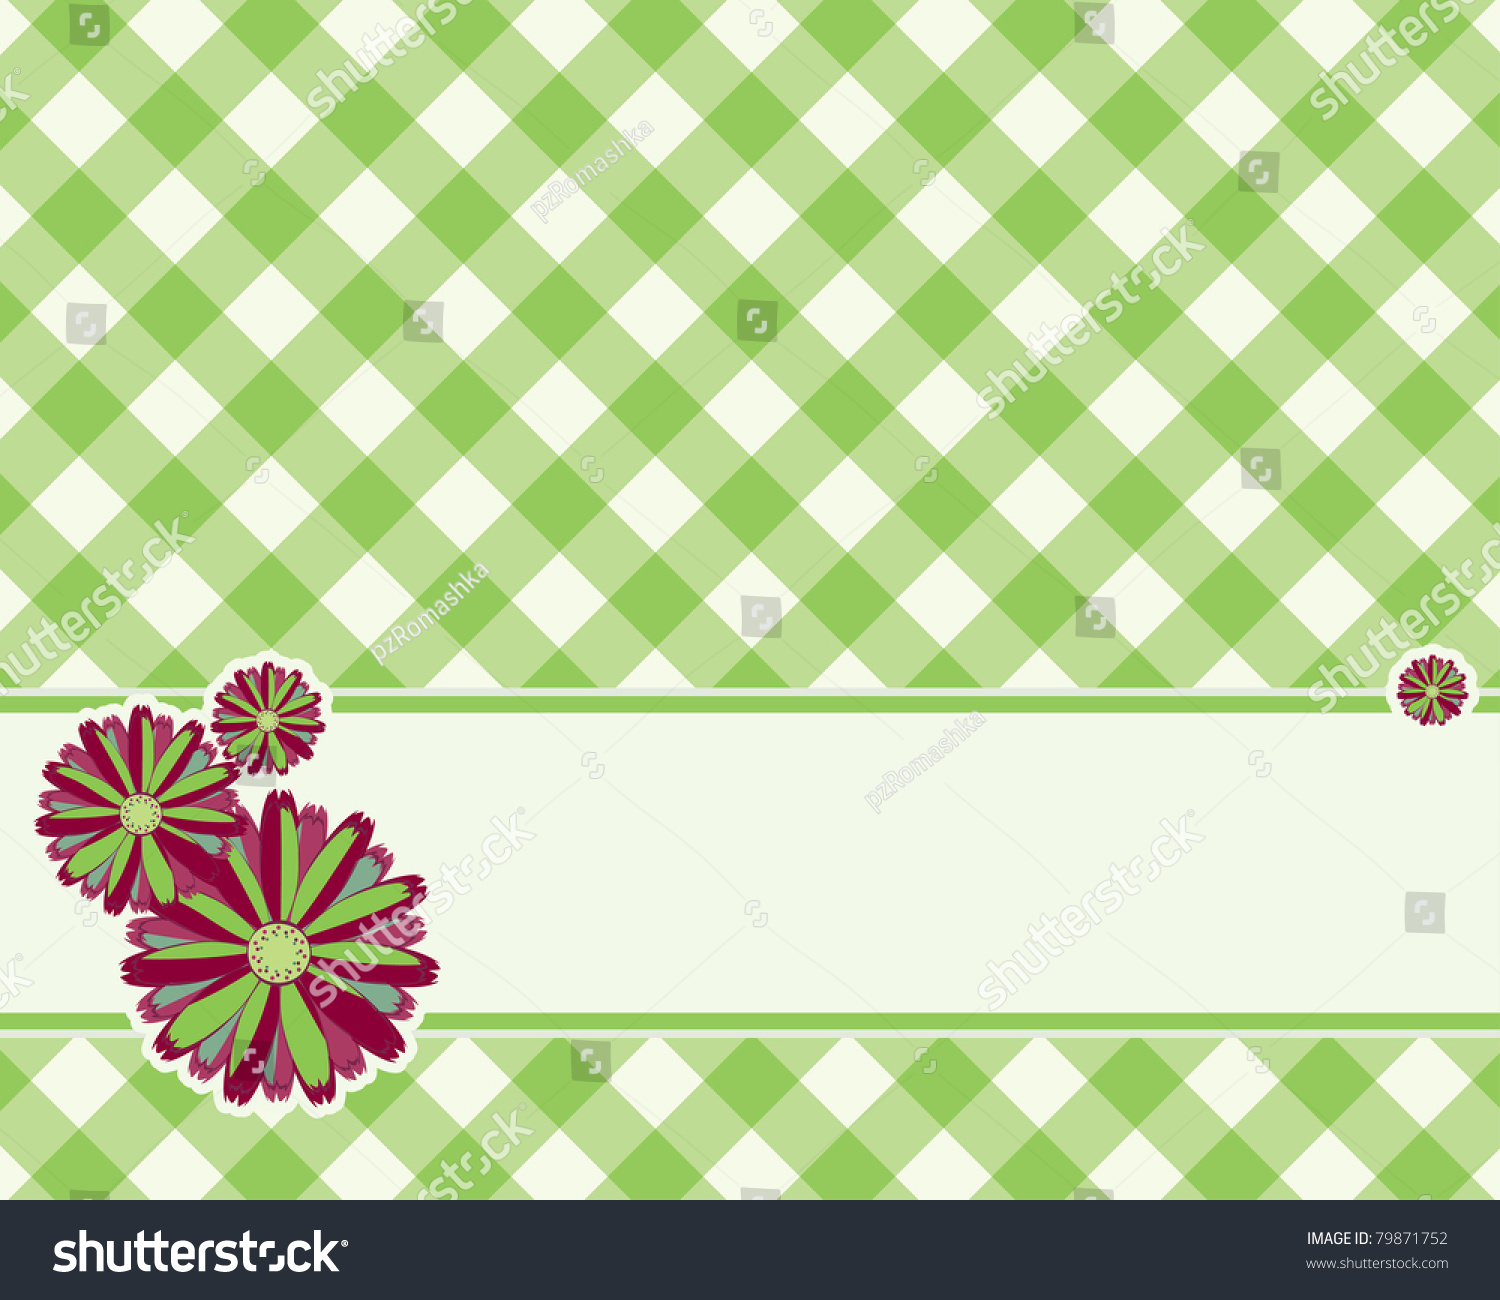 Checkered Background Light Green Color Decorated Stock Vector ...